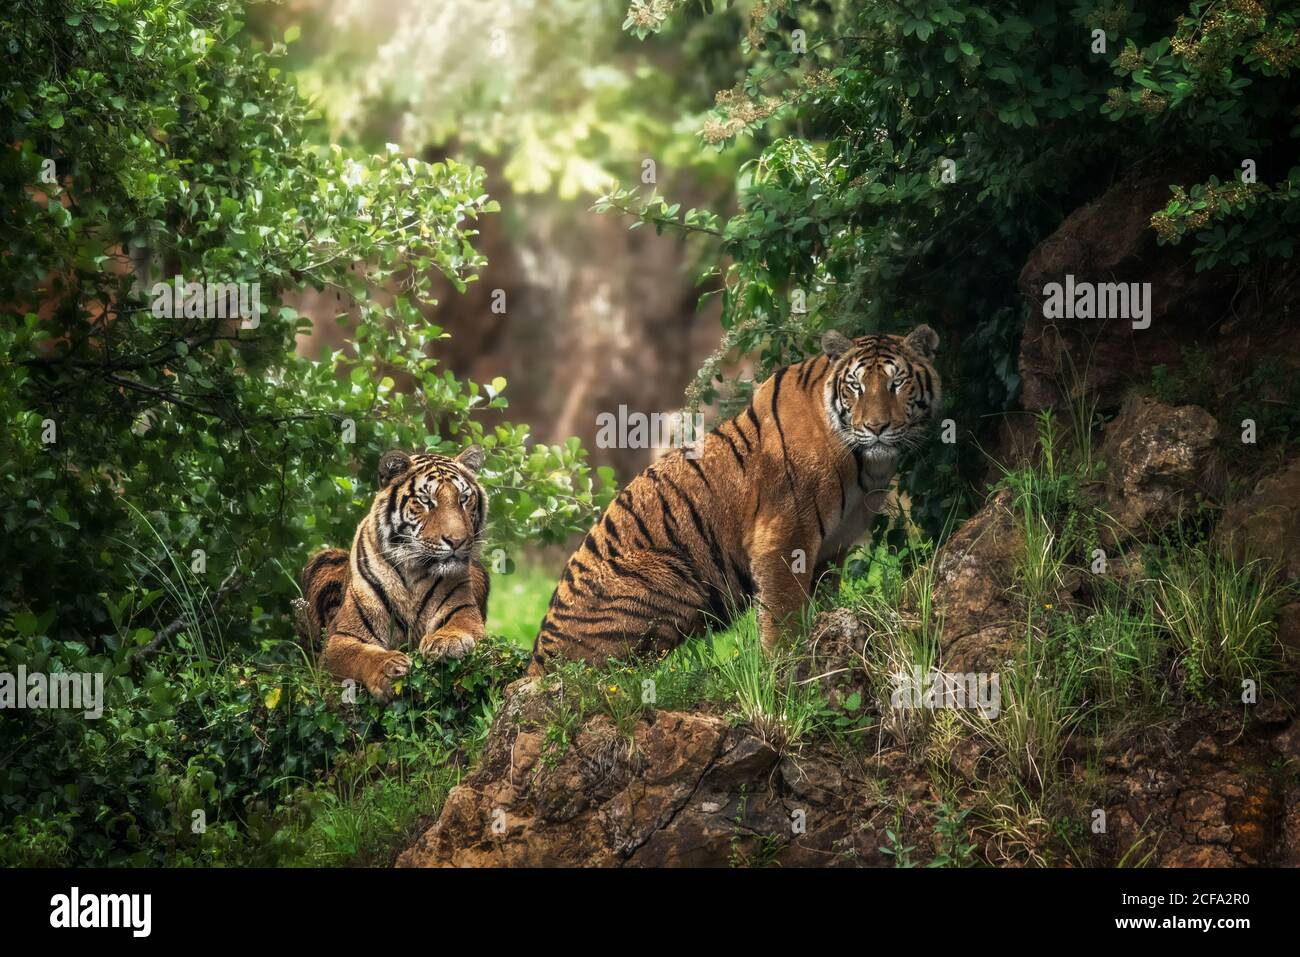 Huge tiger lying on grass near predator friend in colorful jungle near trees with small leaves in sunlight Stock Photo